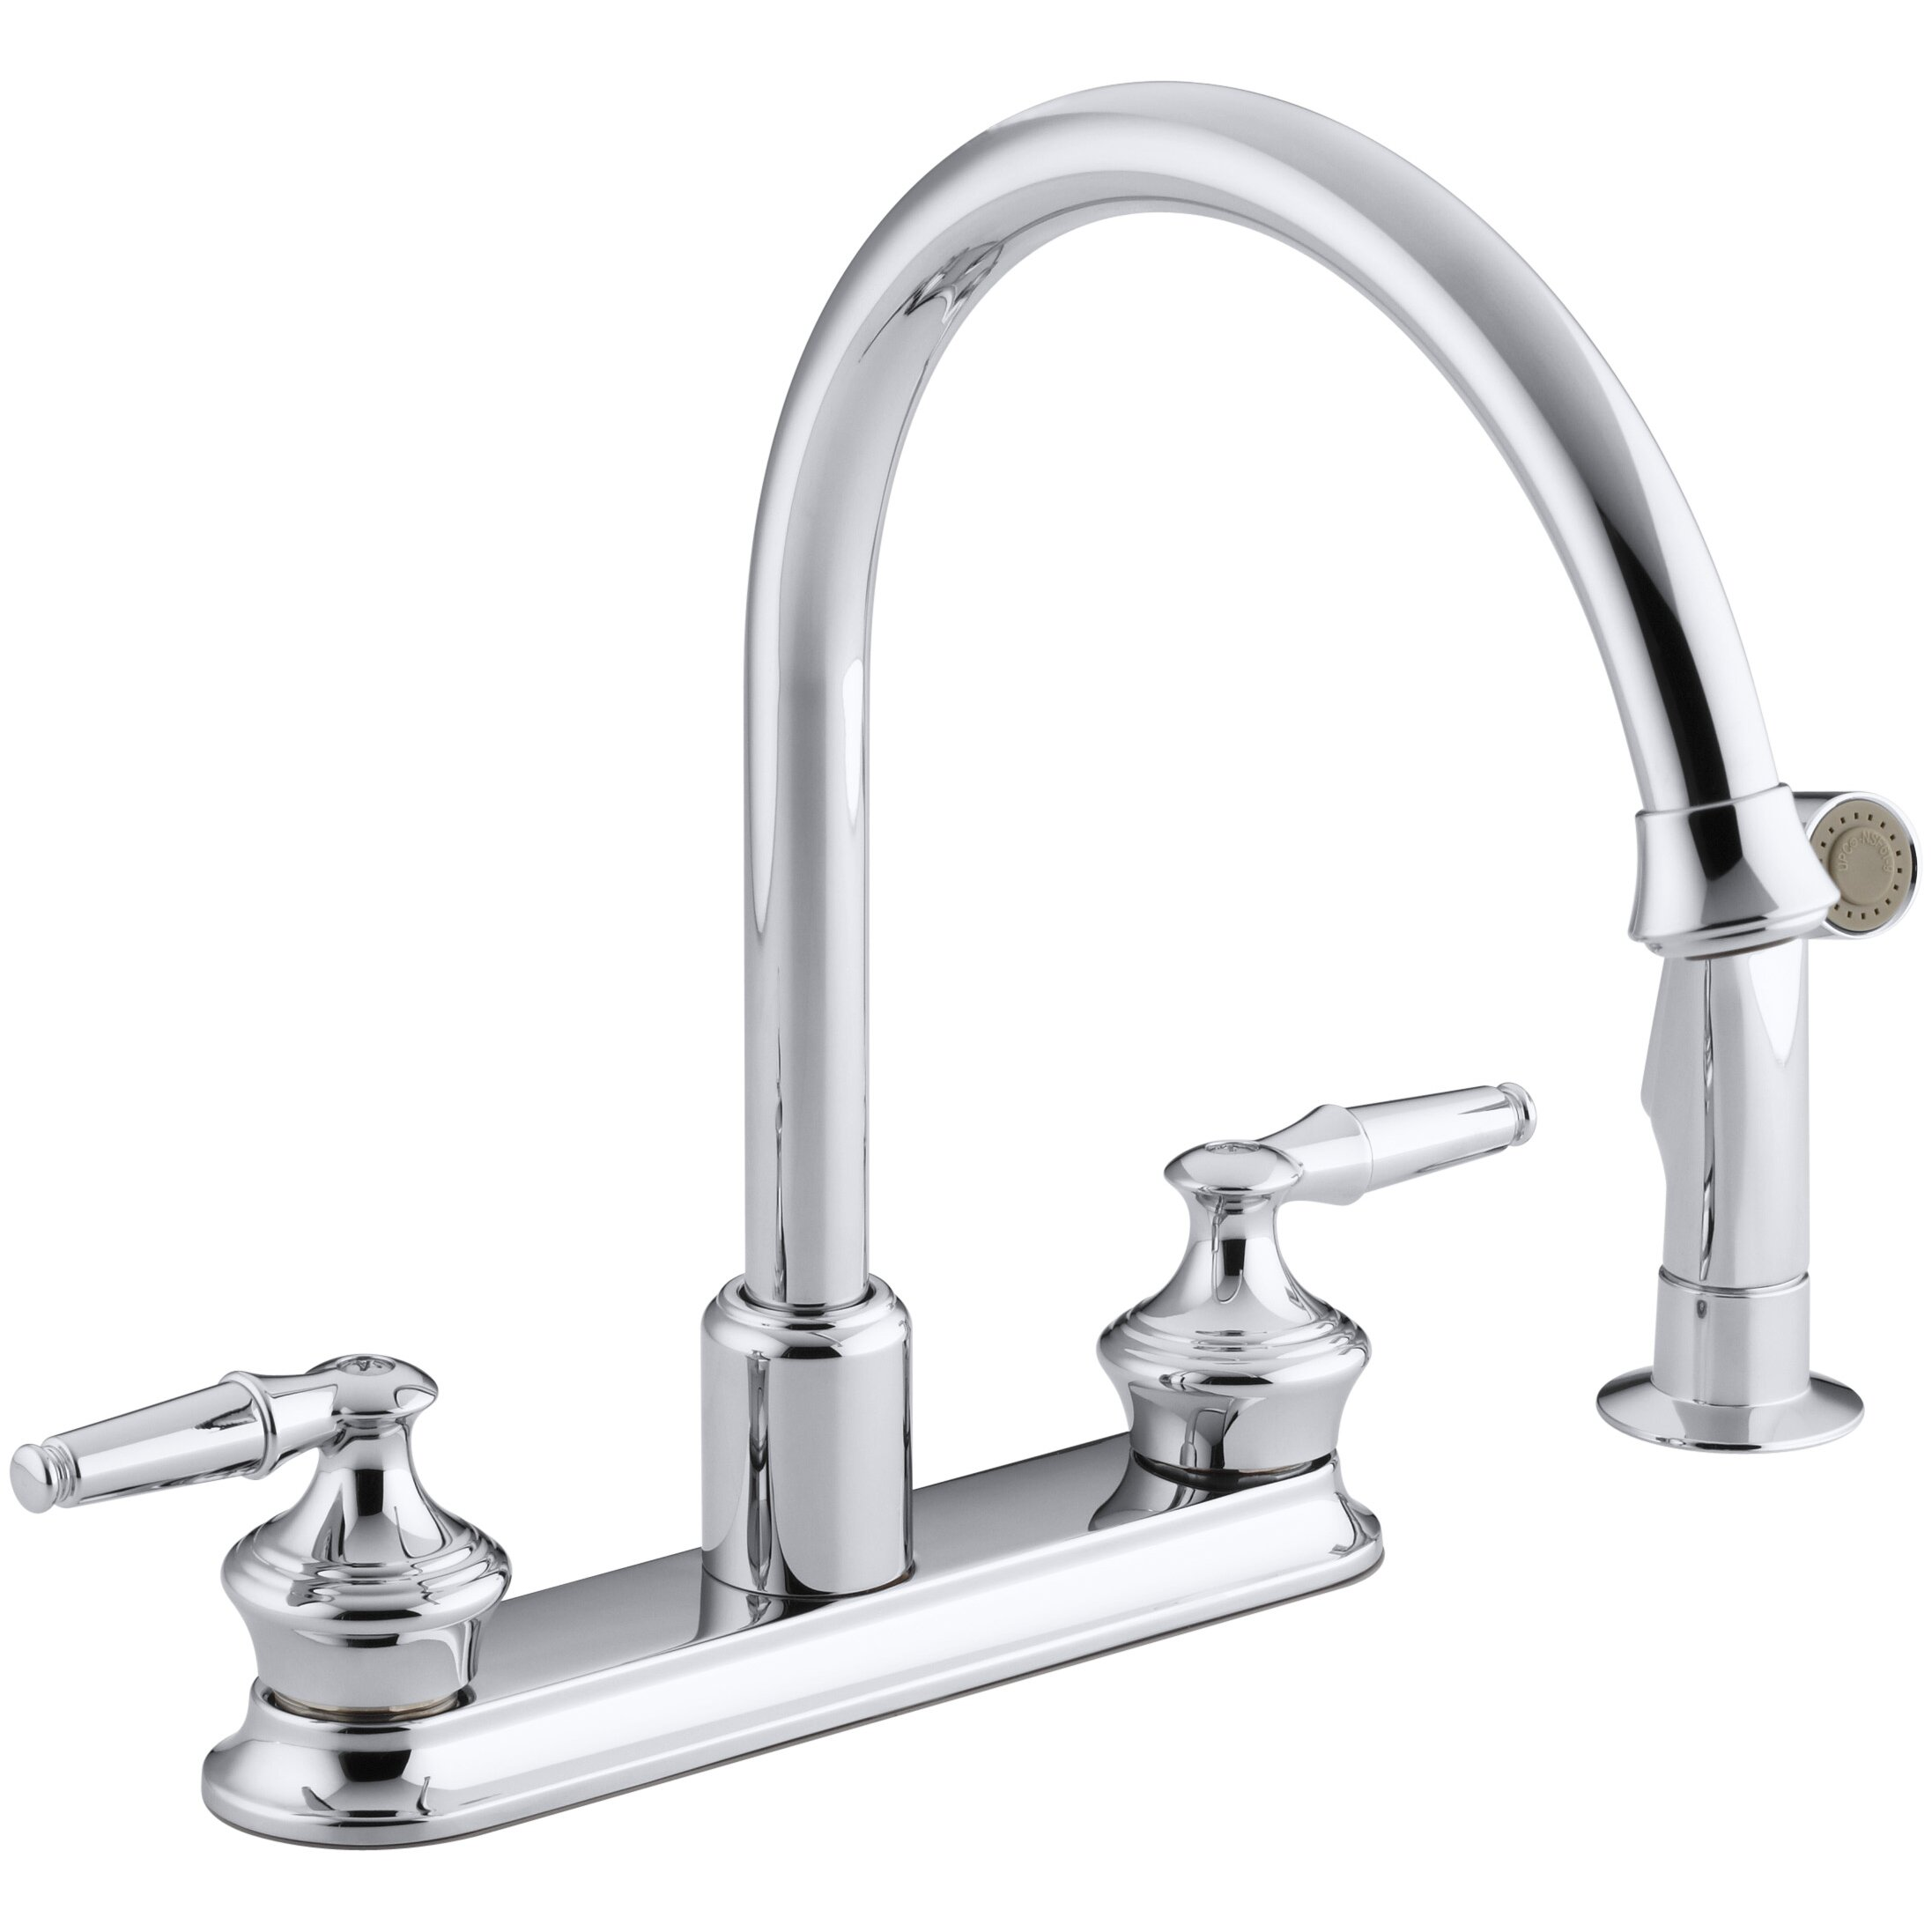 forte moen home parts kohler ebay new canada images kit delta kitchen bathroo repair blog depot excellent faucet faucets